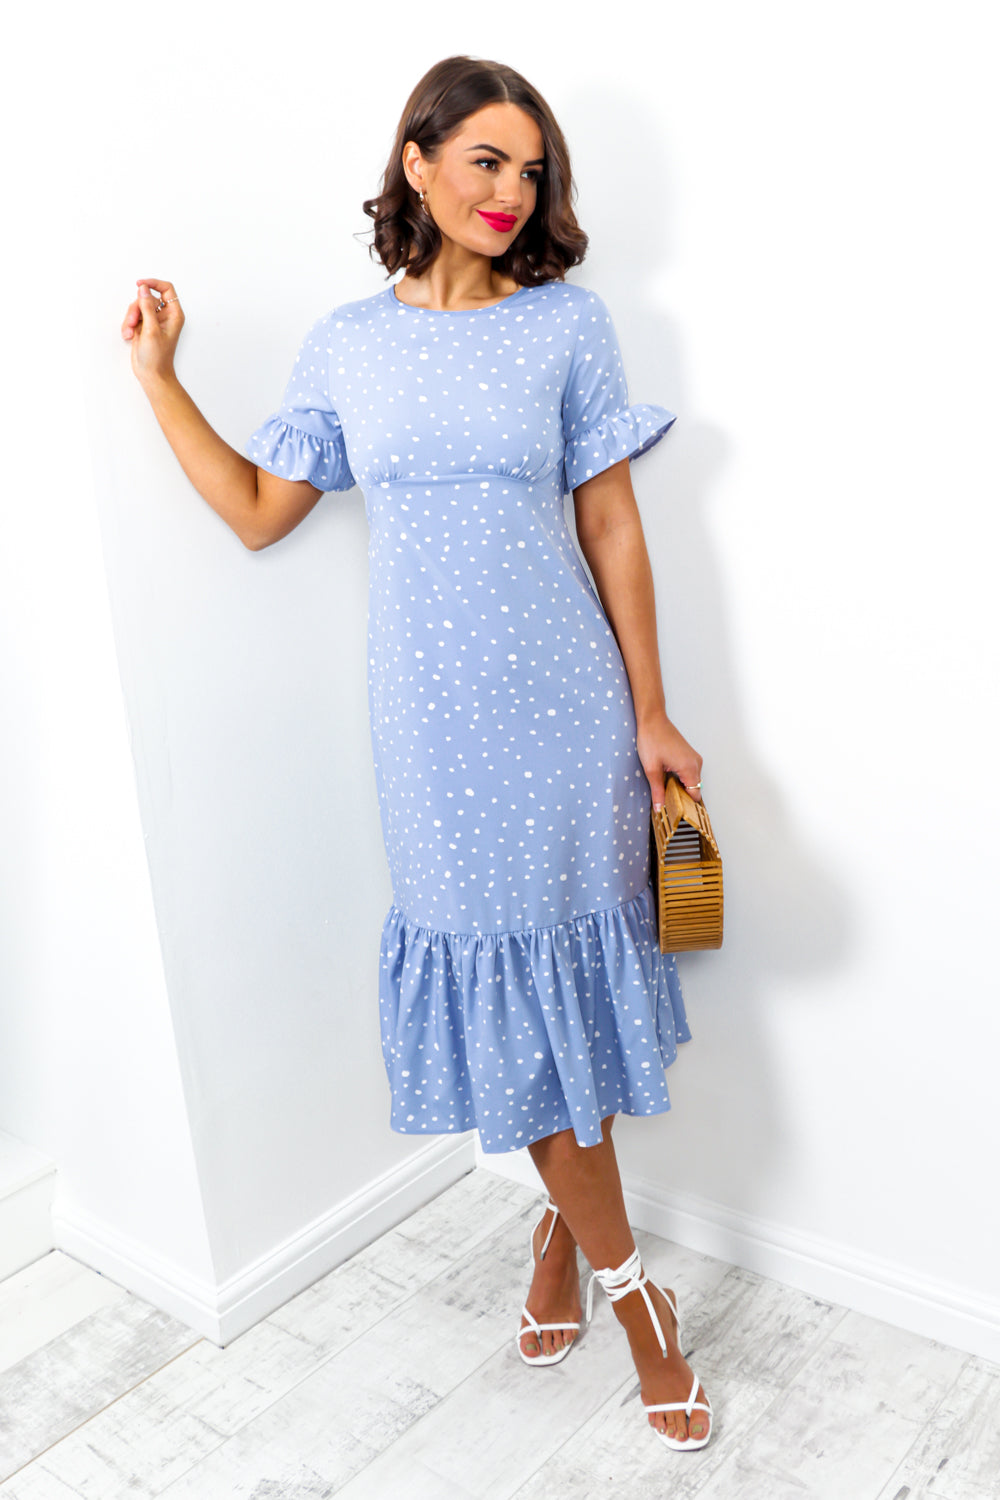 Dot To Dot - Dress In BLUE